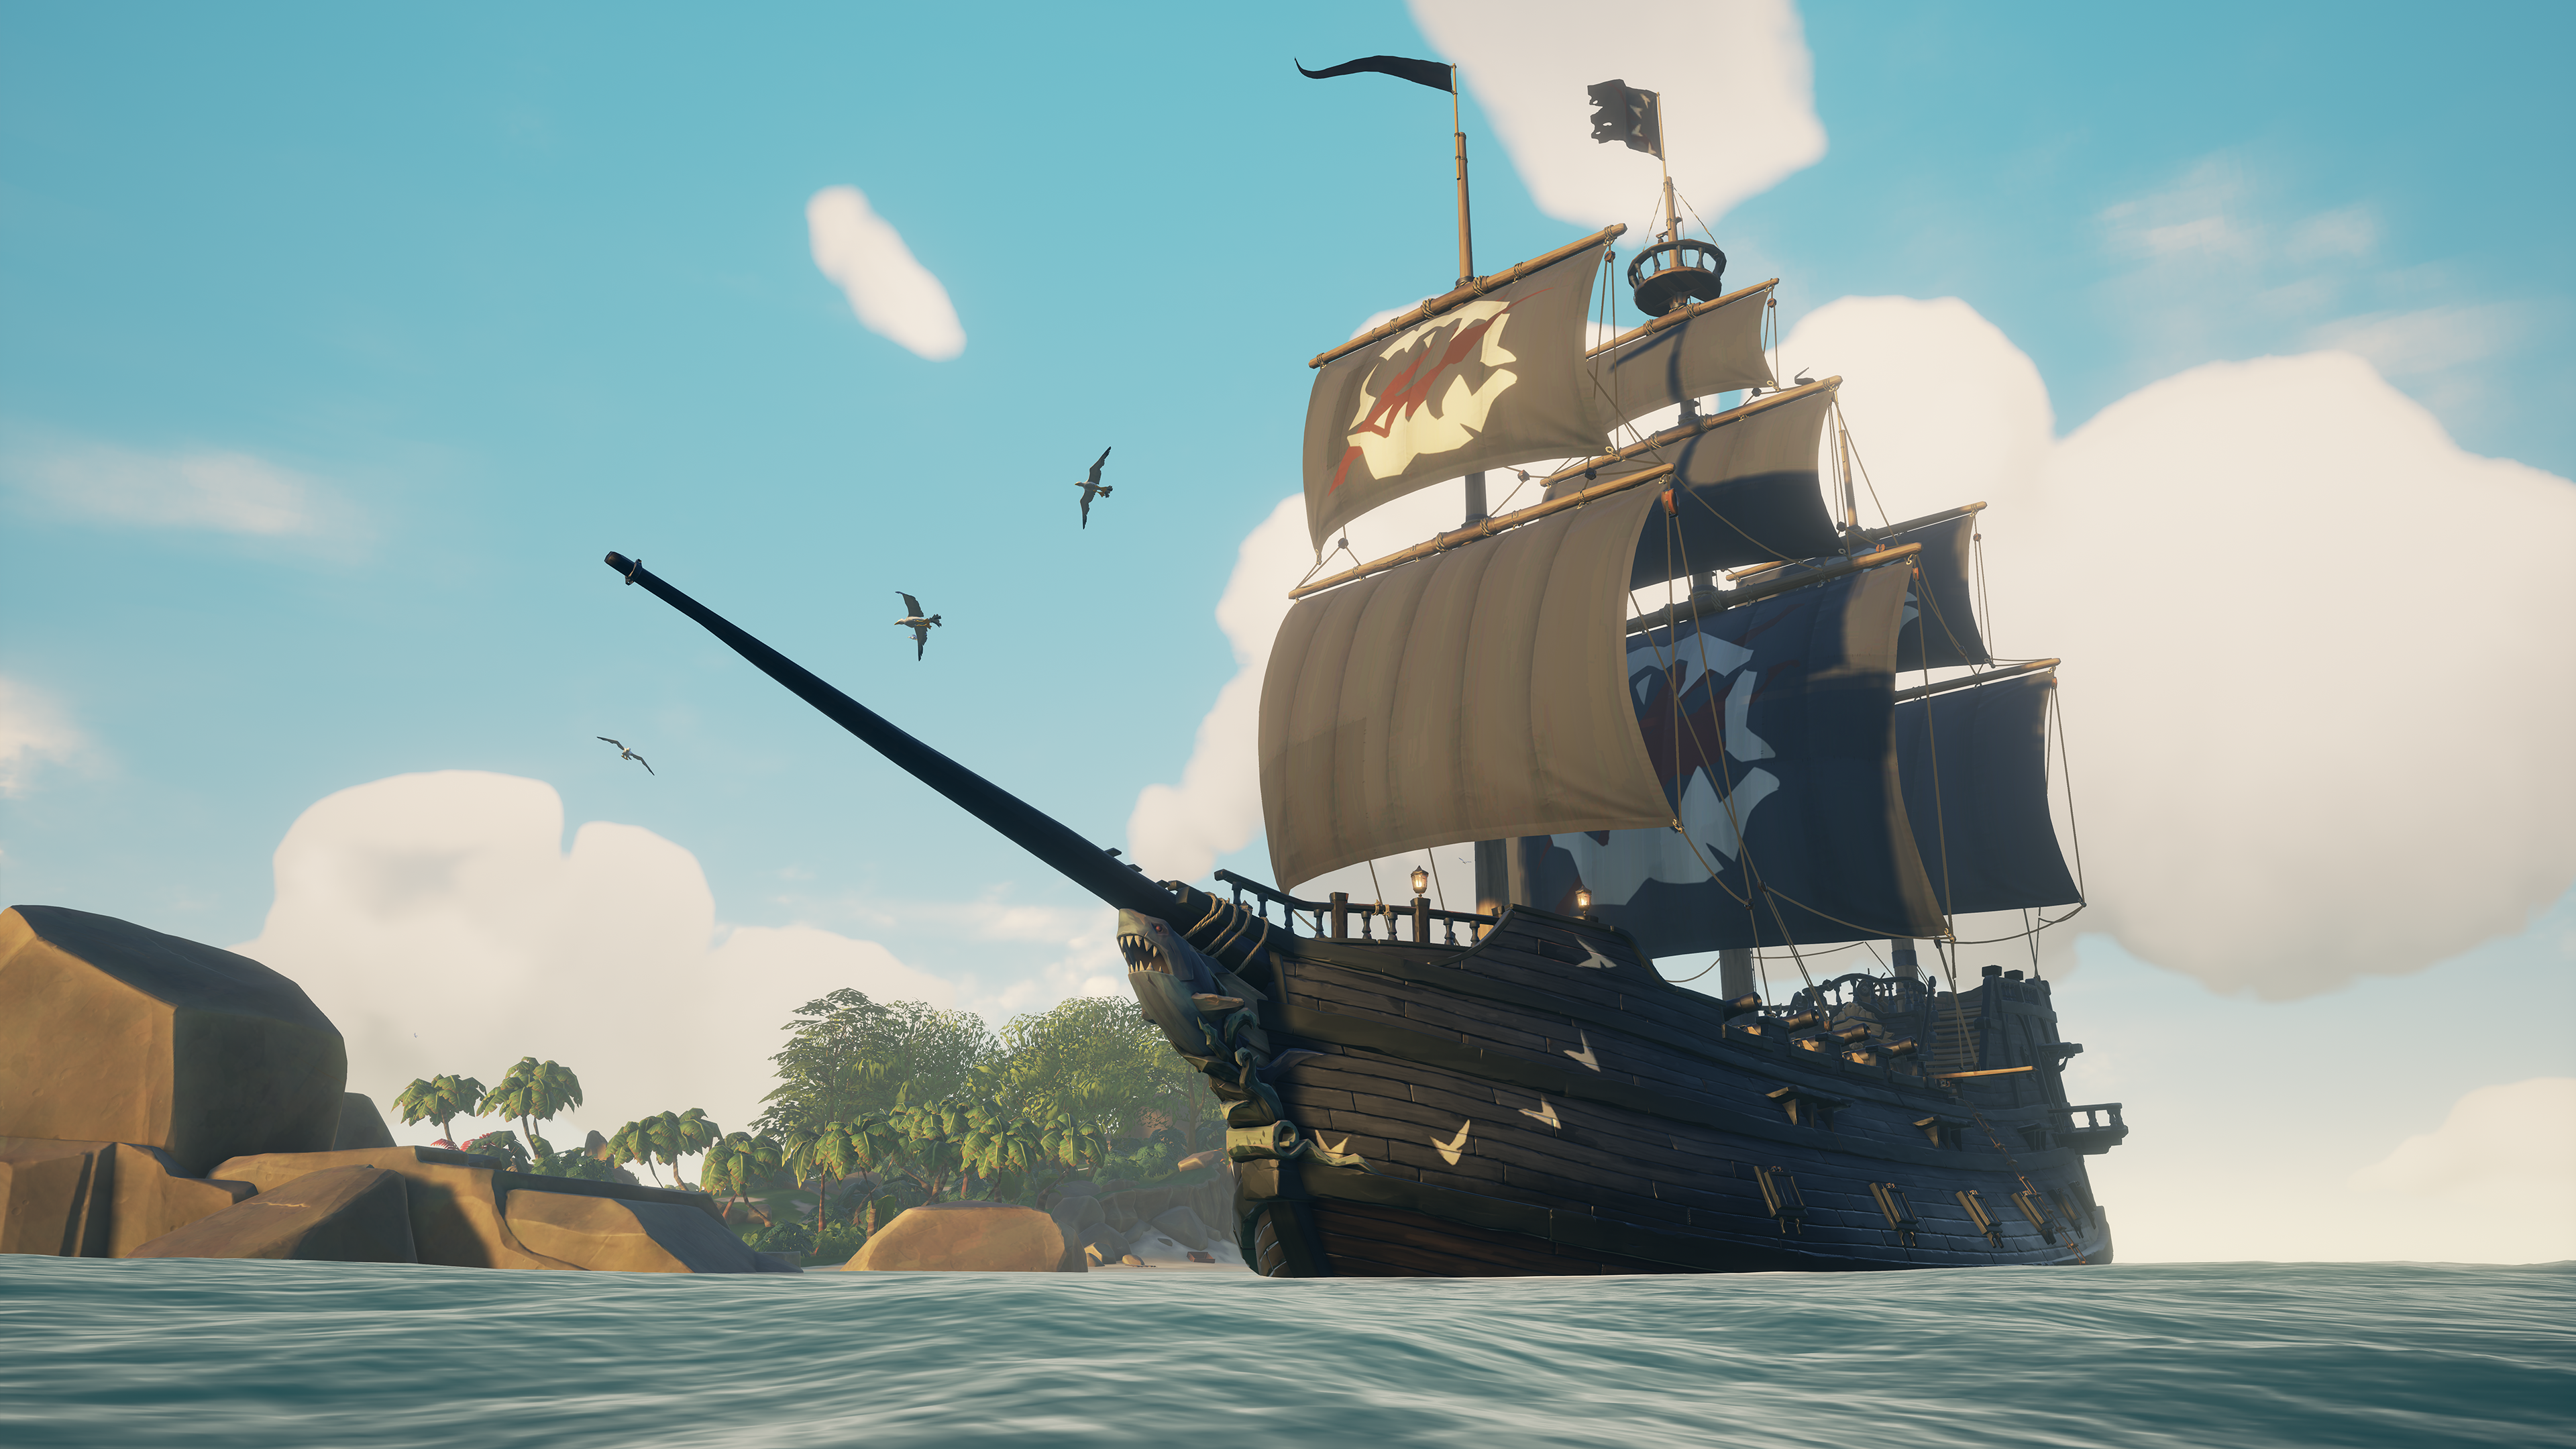 A limited time set of ship cosmetics in Sea of Thieves